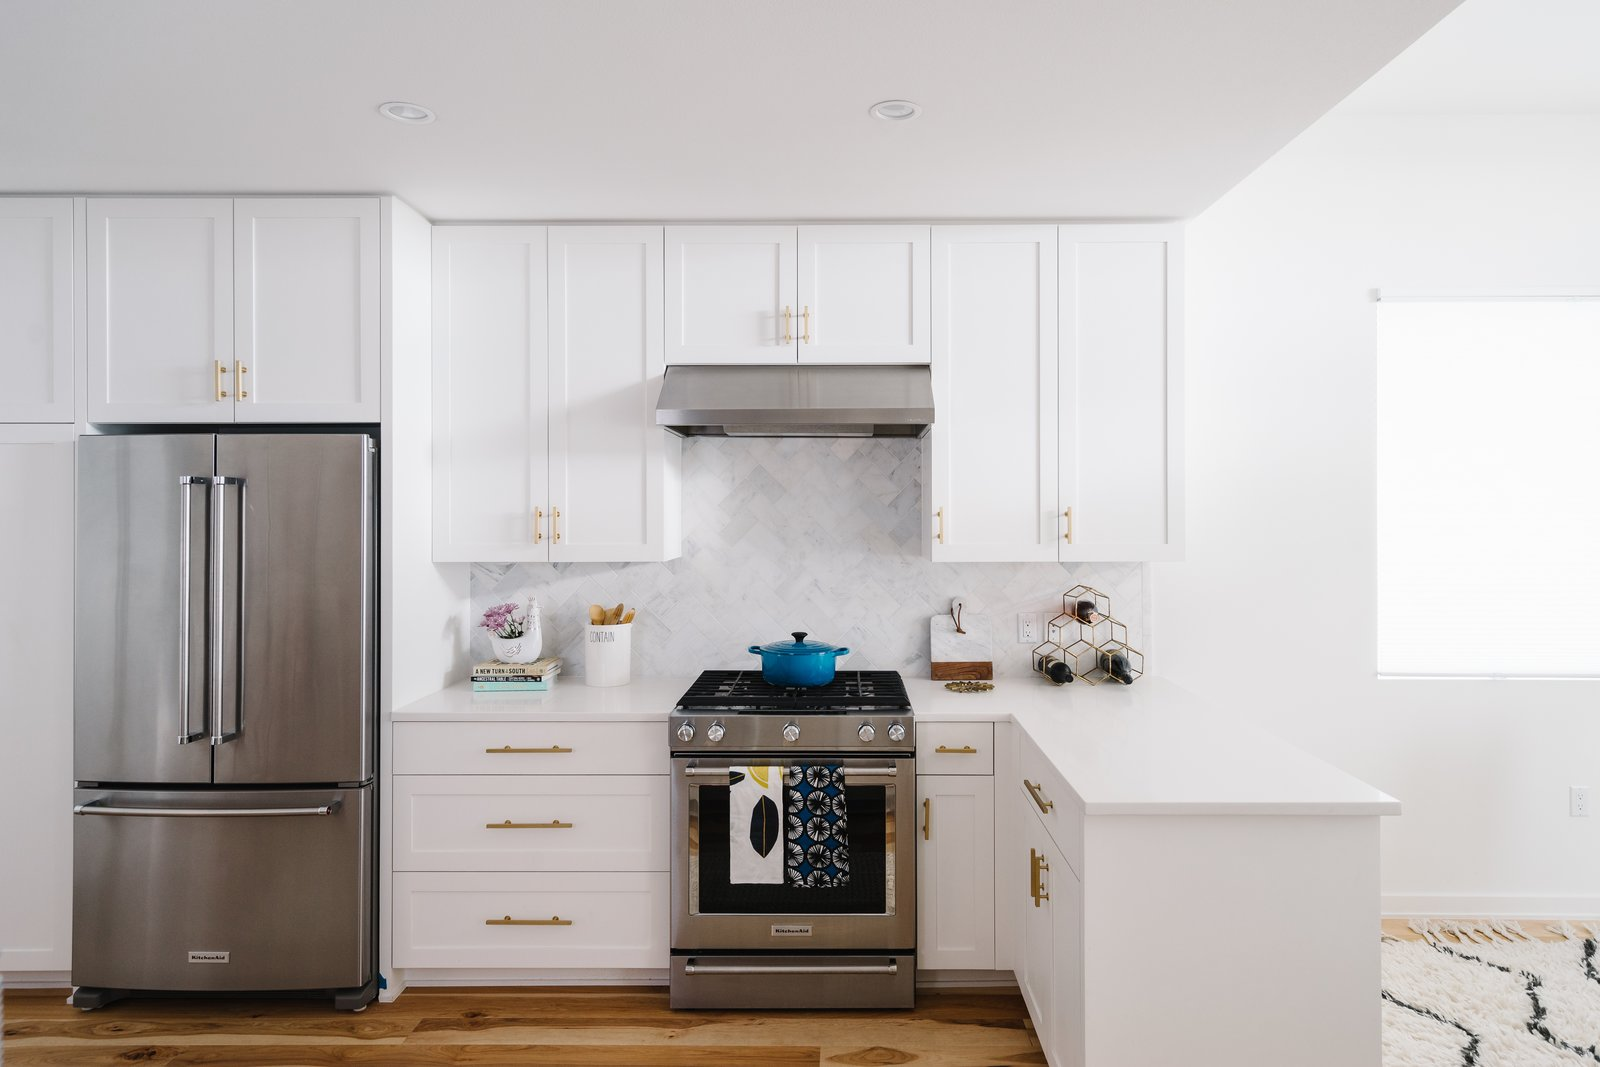 Sustainability is the Centerpiece of This New Austin Development - Photo 6 of 6 - The bright white kitchen is accented with metallic door pulls and a marble tile backsplash.